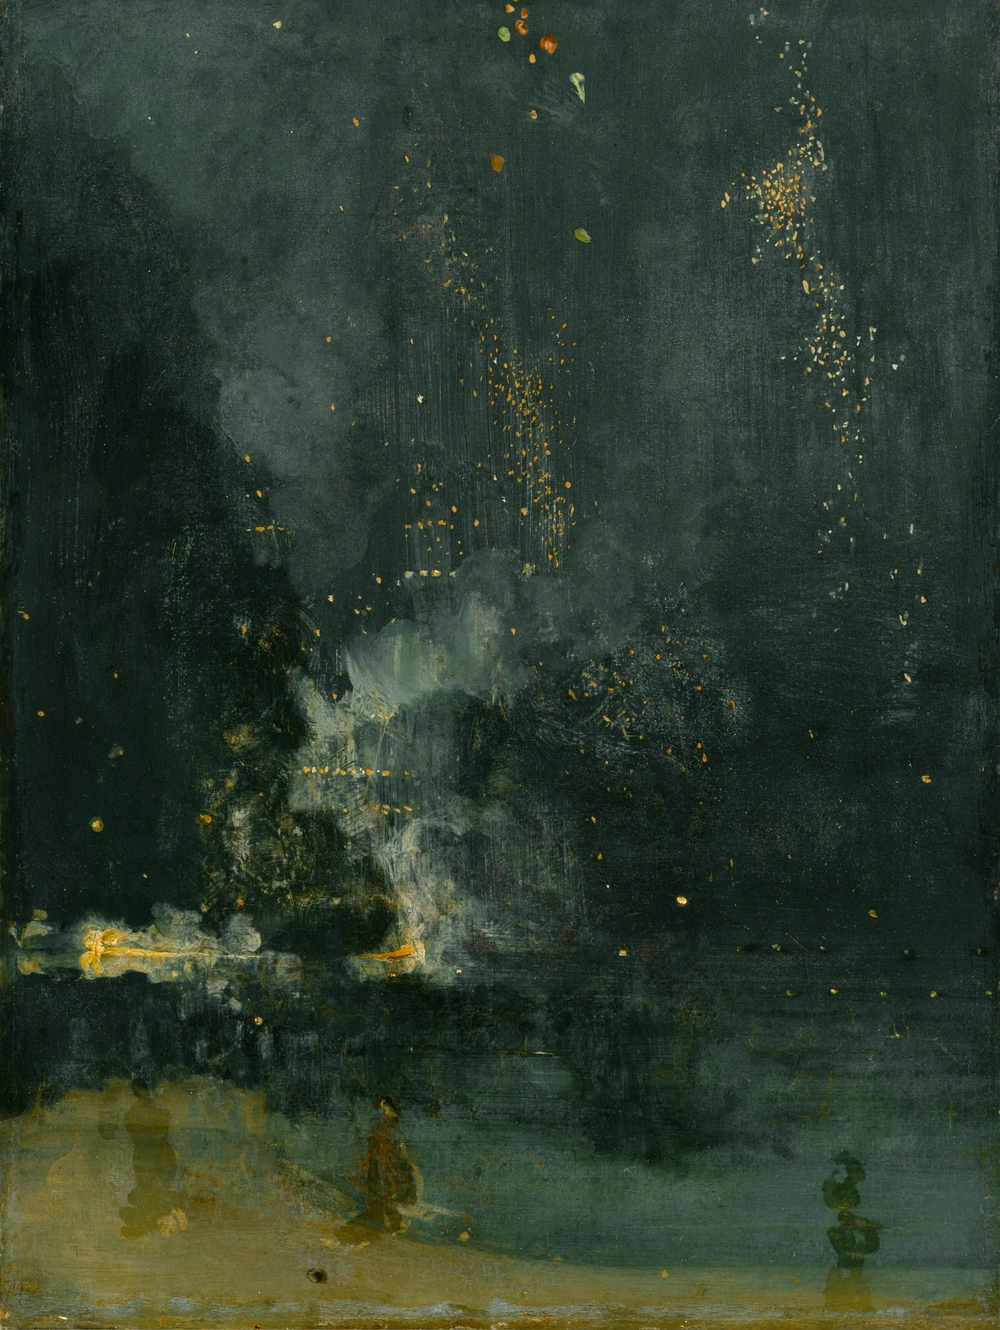 Fig. 2 James Abbott McNeil   l Whistler   Nocturne in Black an    d Gold: The Falling Rocket   1874 Oil on canvas